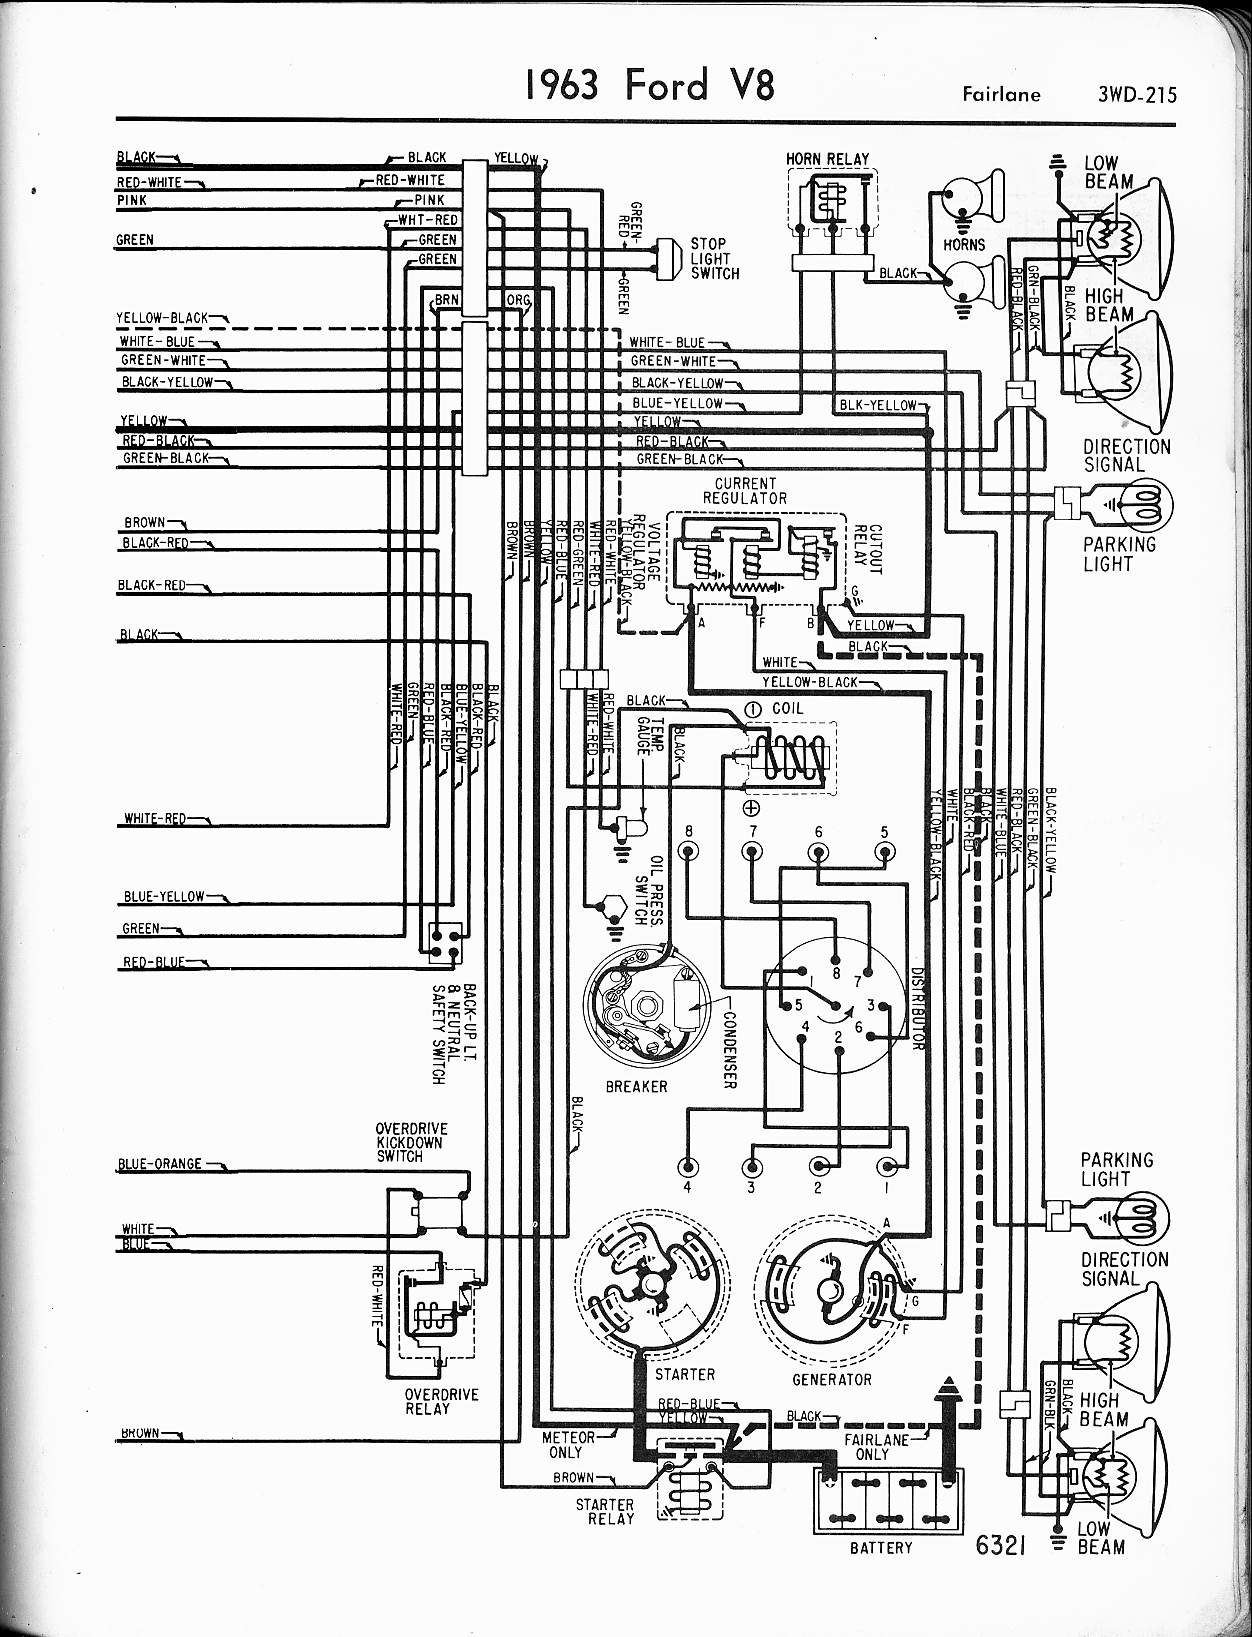 1963 Mercury Monterey Wiring Diagram Reinvent Your 1964 Ford Galaxie Radio Schematics Diagrams U2022 Rh Parntesis Co 1962